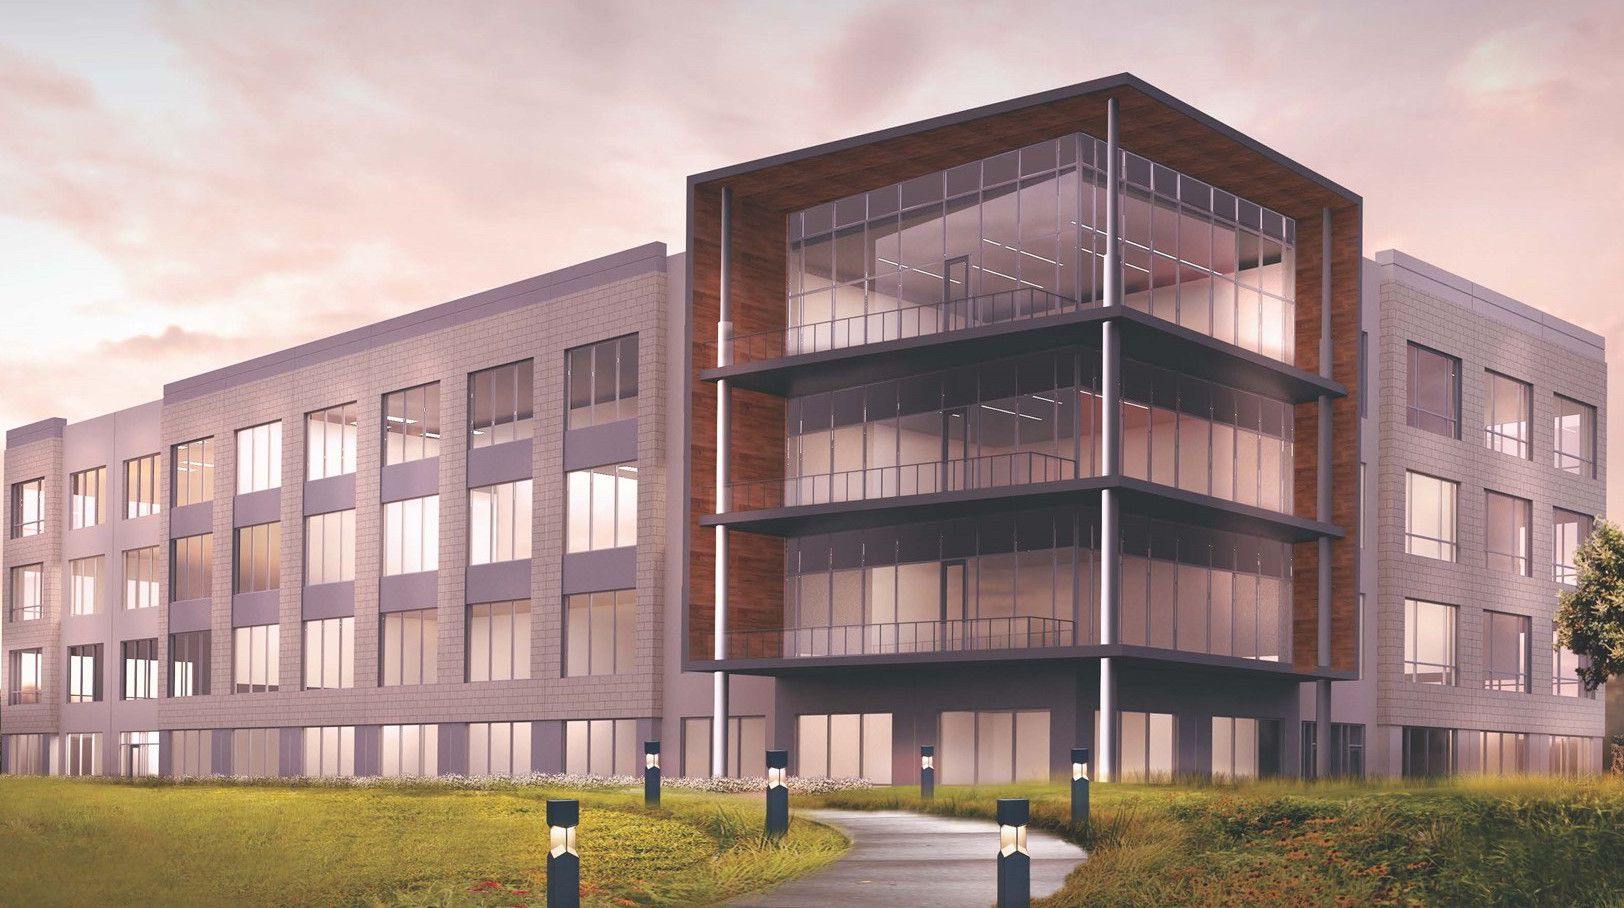 Heady Investments will build the office project in Plano's Mustang Square development.